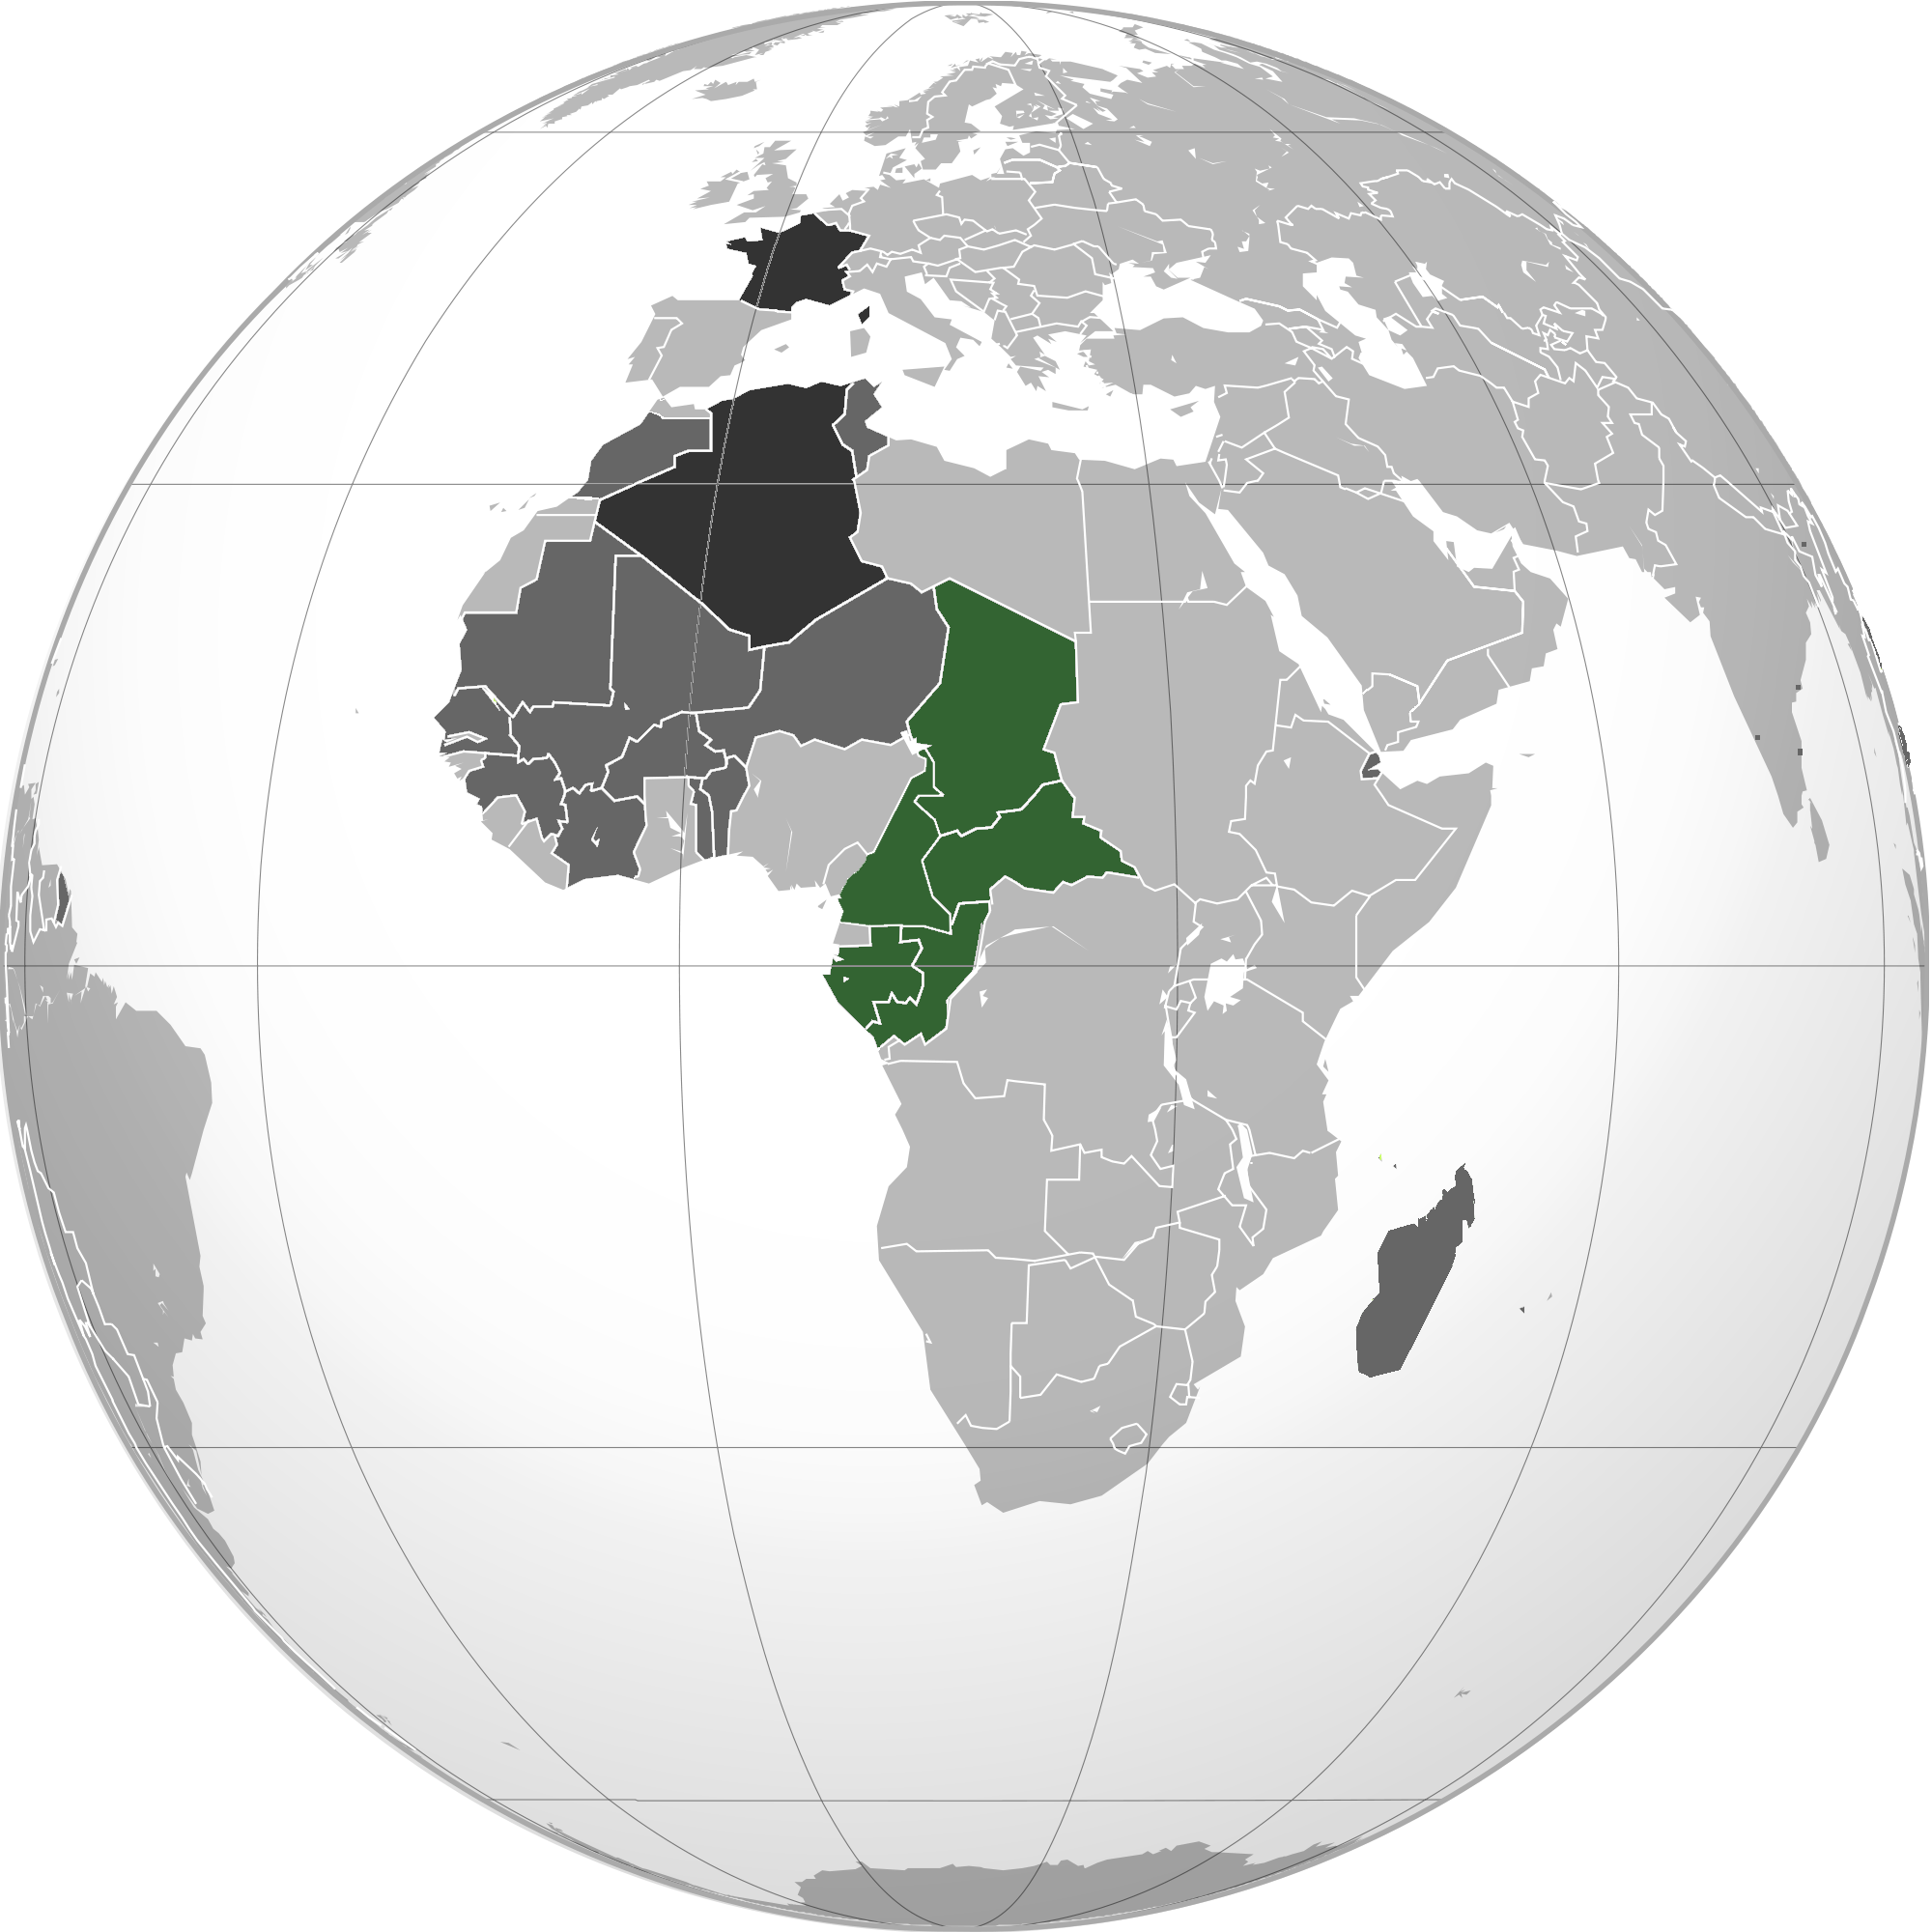 French Equatorial Africa | The Countries Wiki | FANDOM powered by